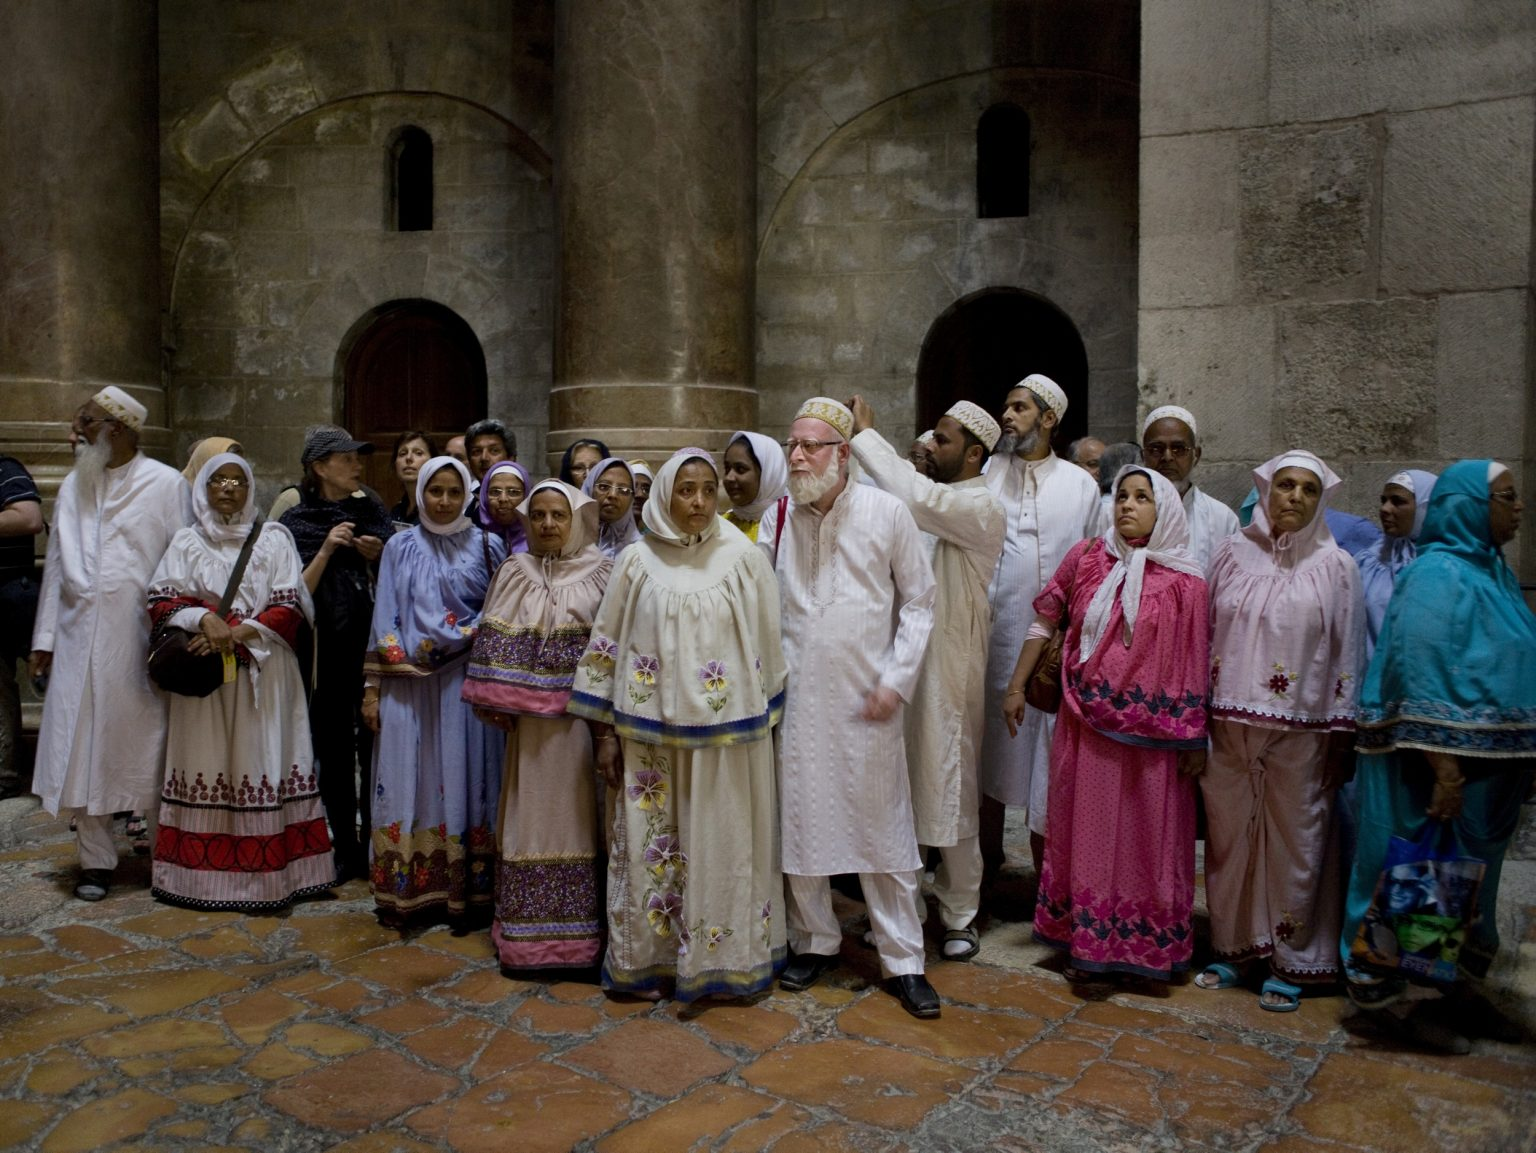 Christian pilgrims in the Church of the Holy Sepulcre in Jerusalem during the Holy week.